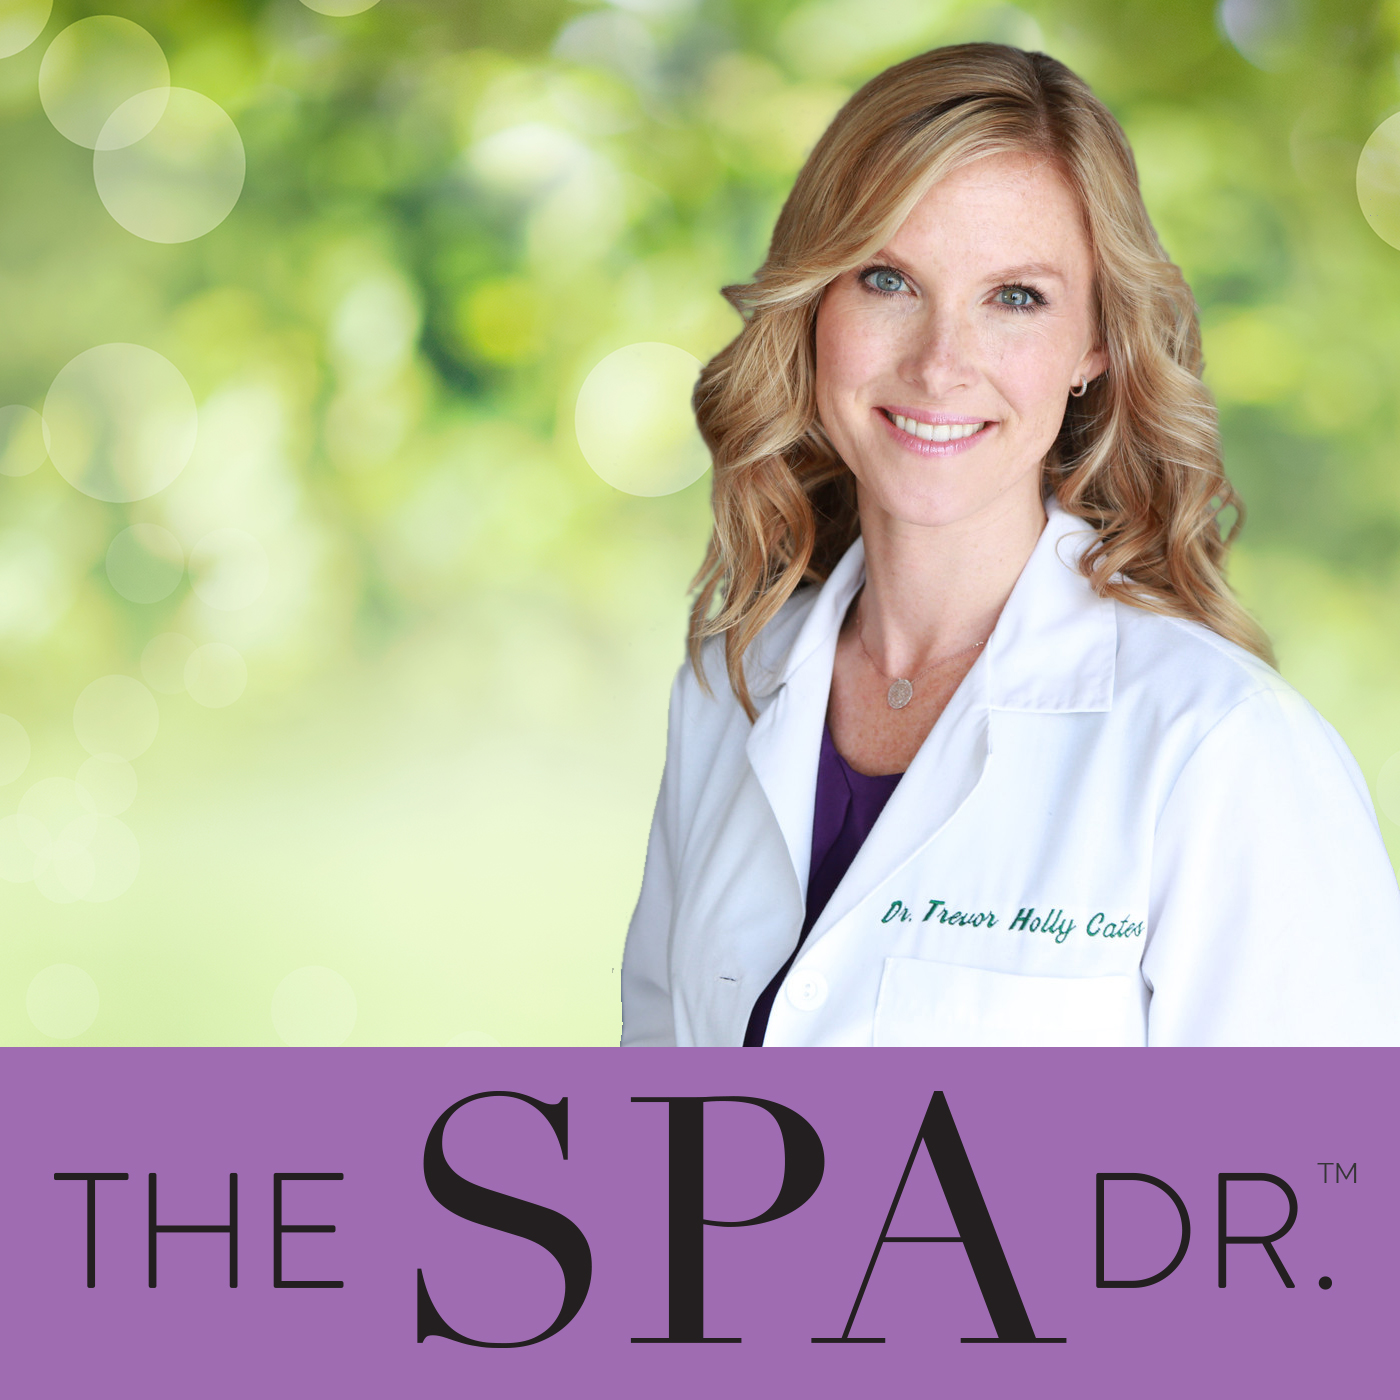 The Spa Dr